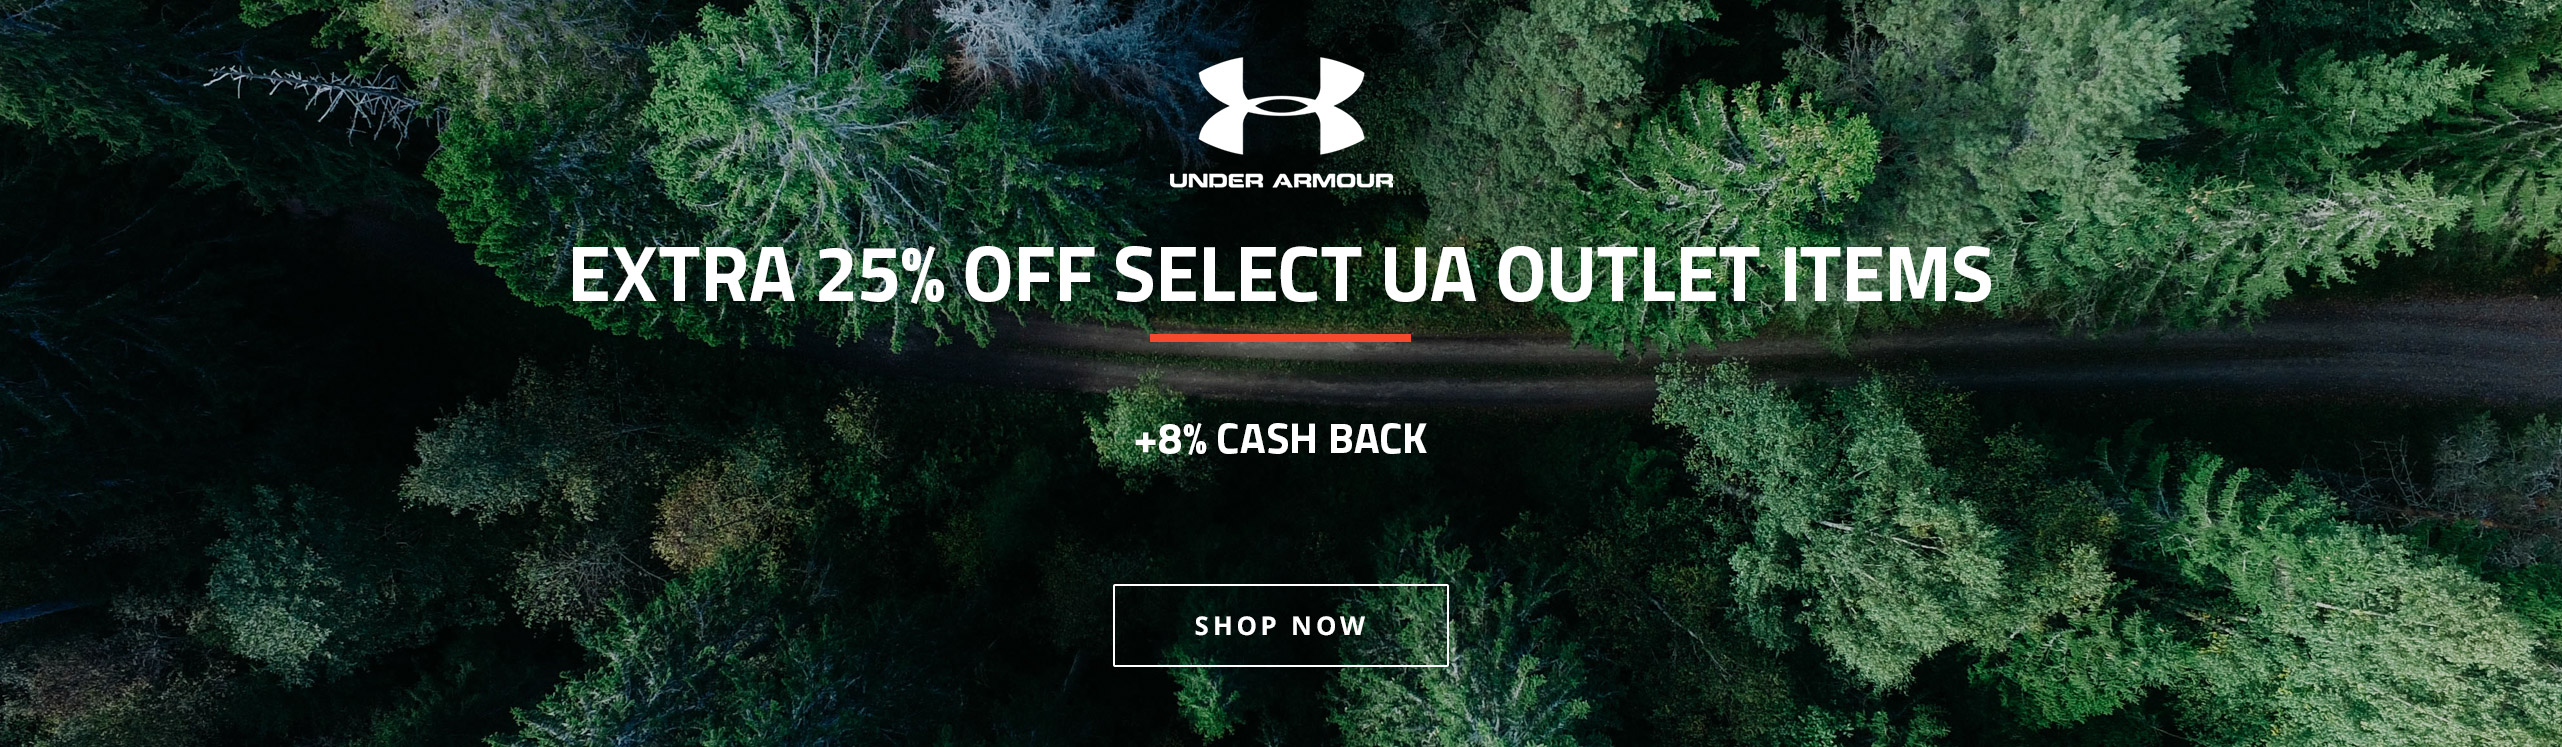 Under Armour (8%) Extra 25% Off Select UA Outlet Items